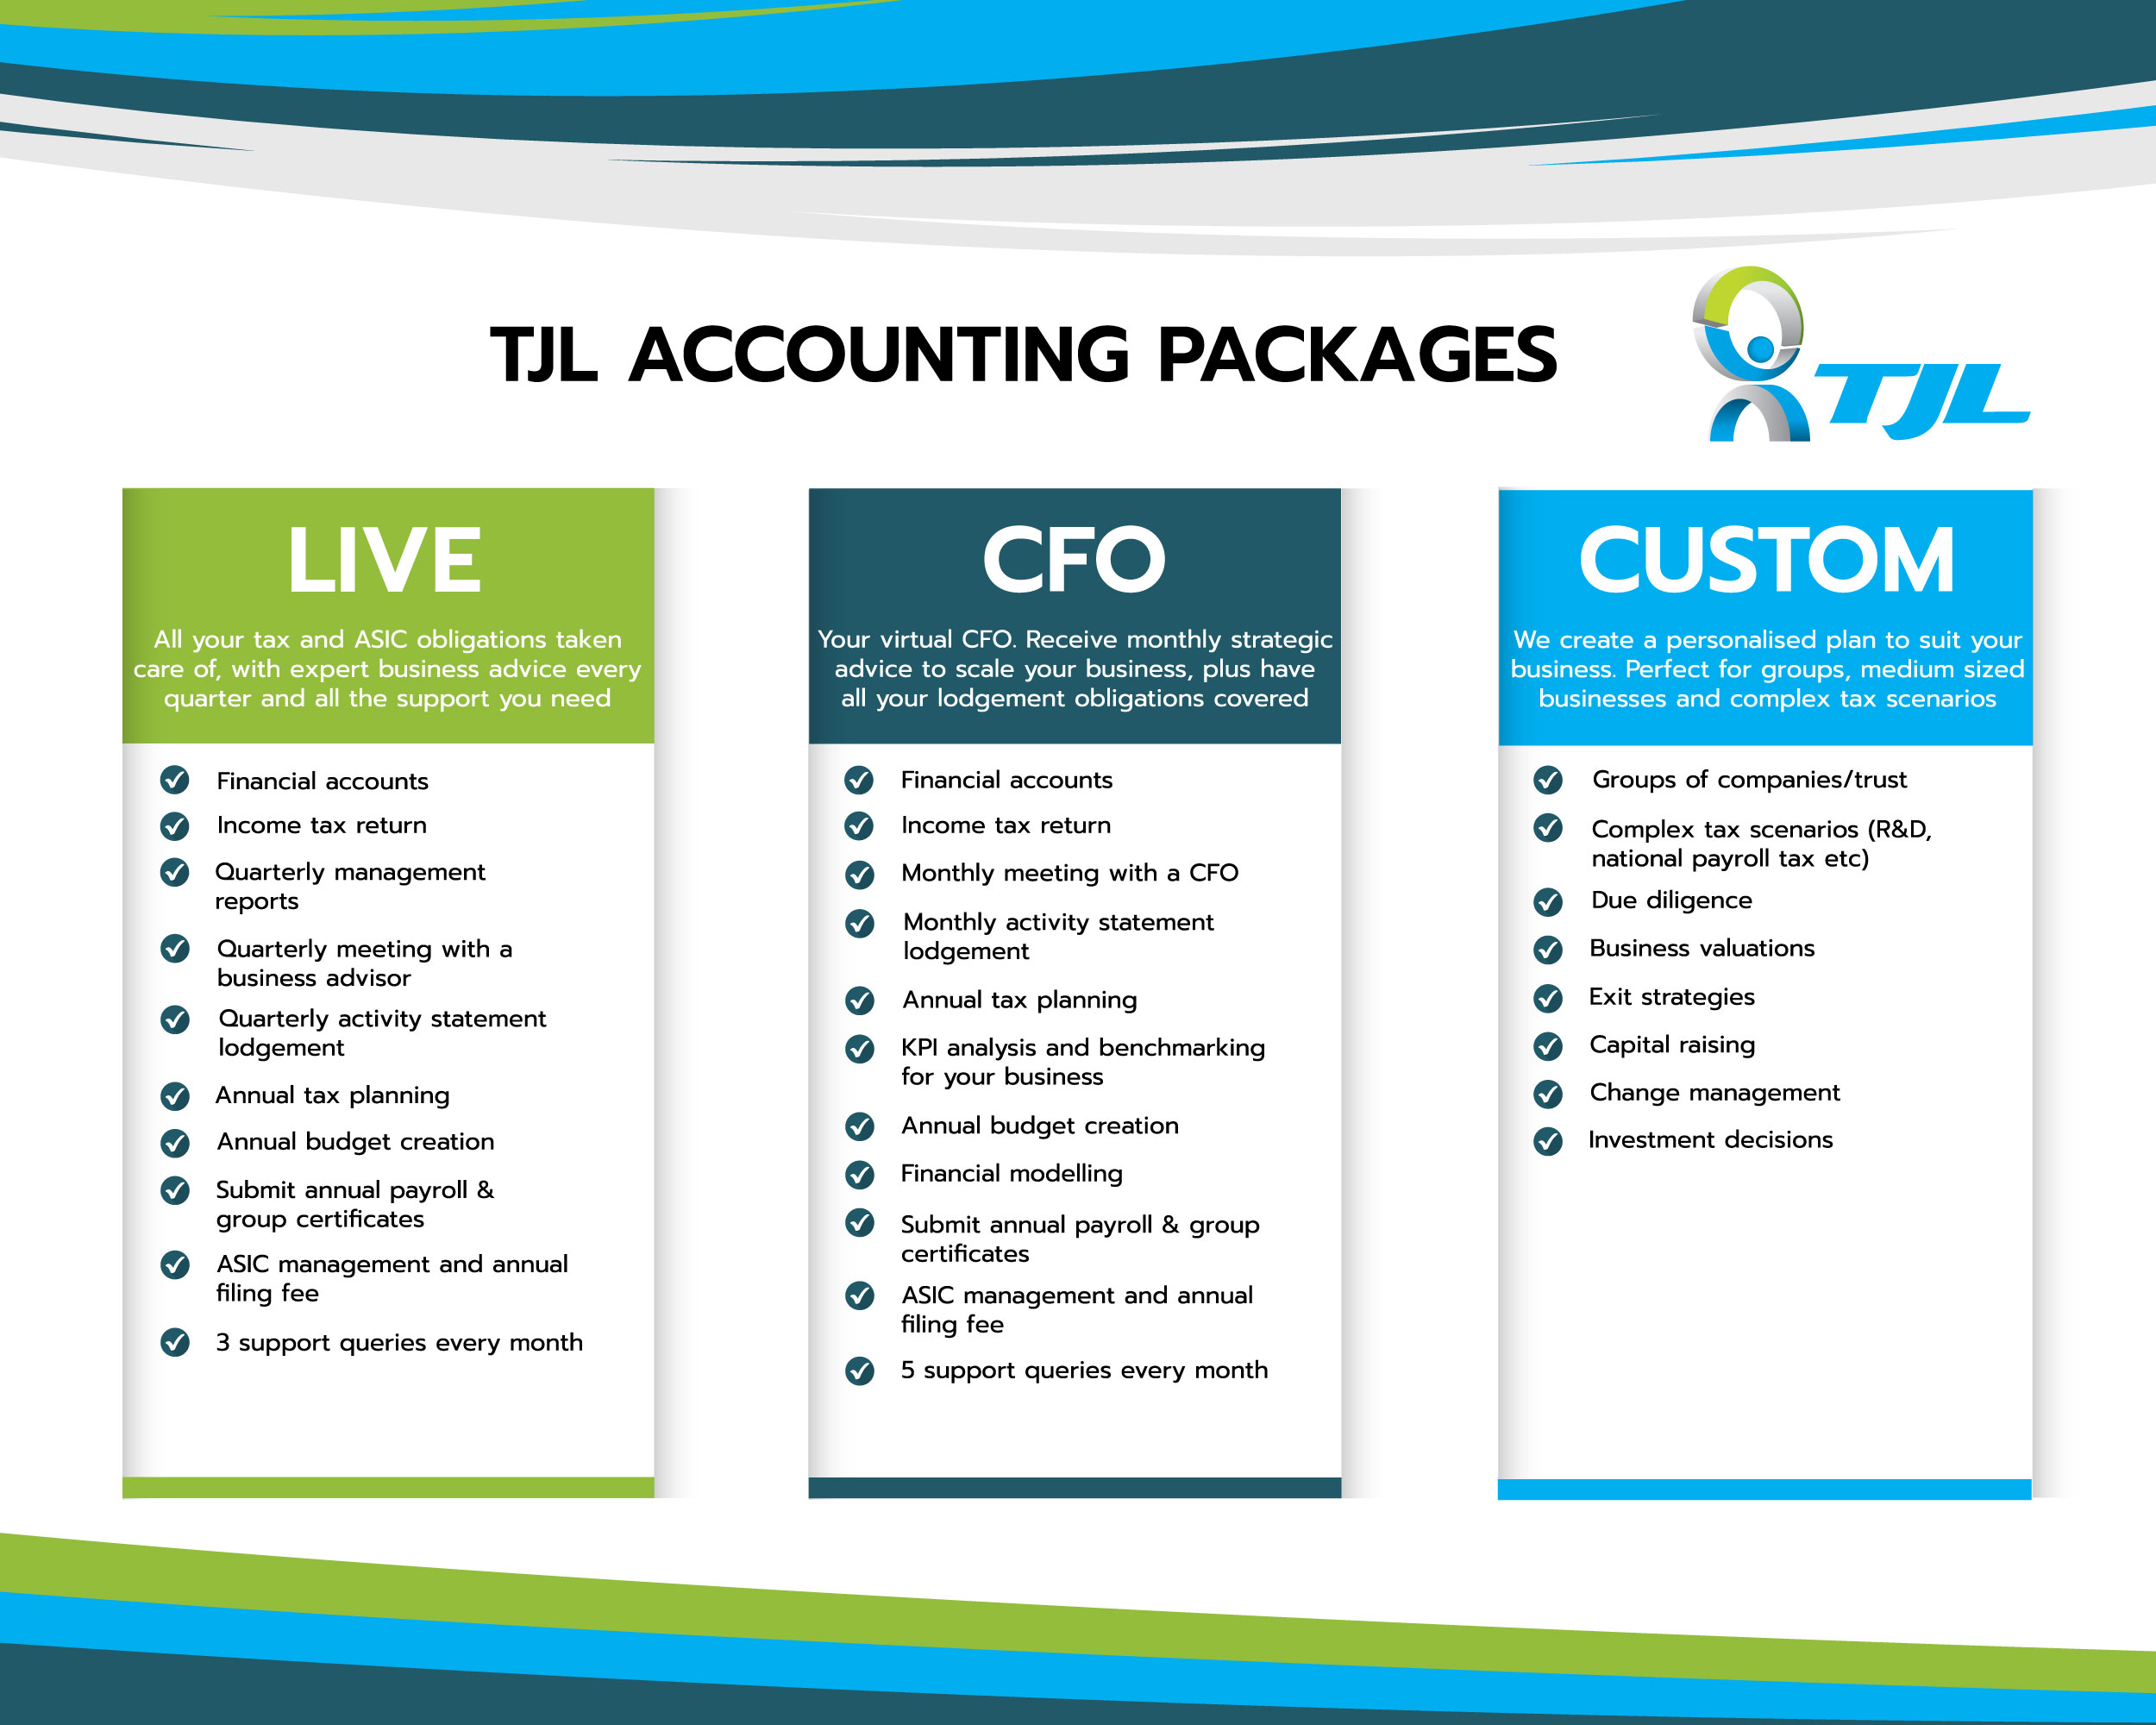 TJL - Accounting Packages